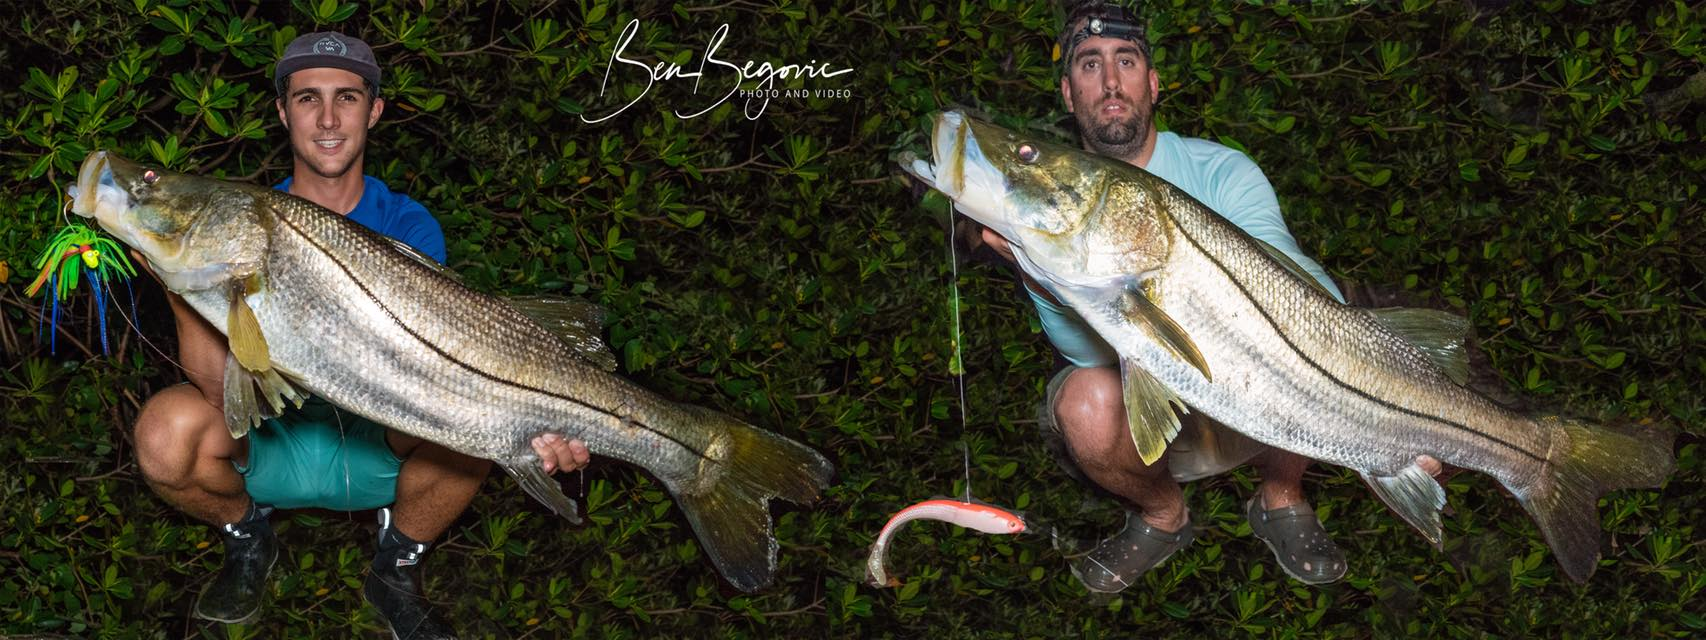 Monster Snook Fishing in Florida, Begovic Style.